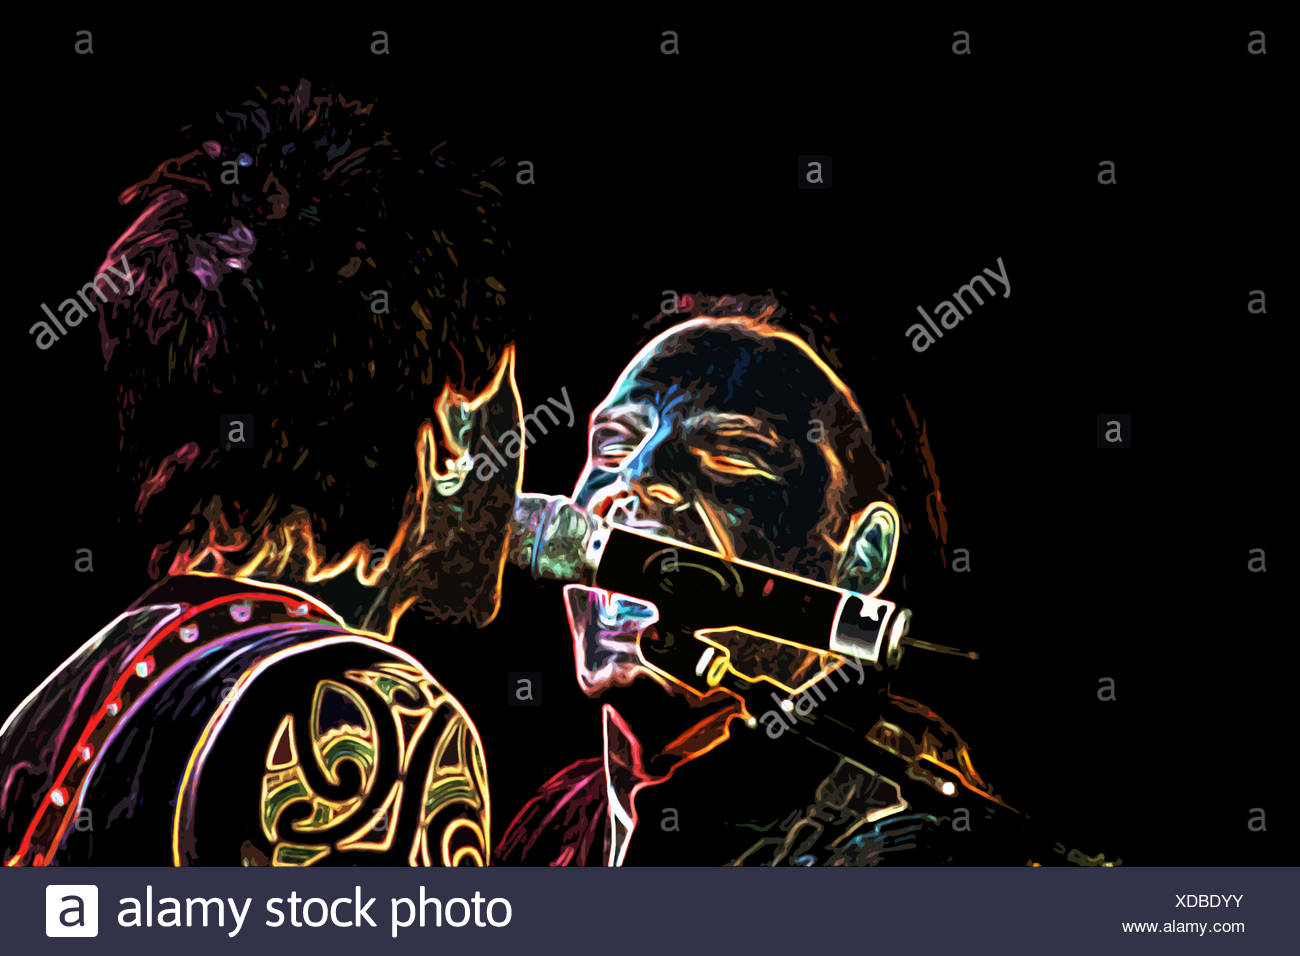 Duet on Stage - Stock Image